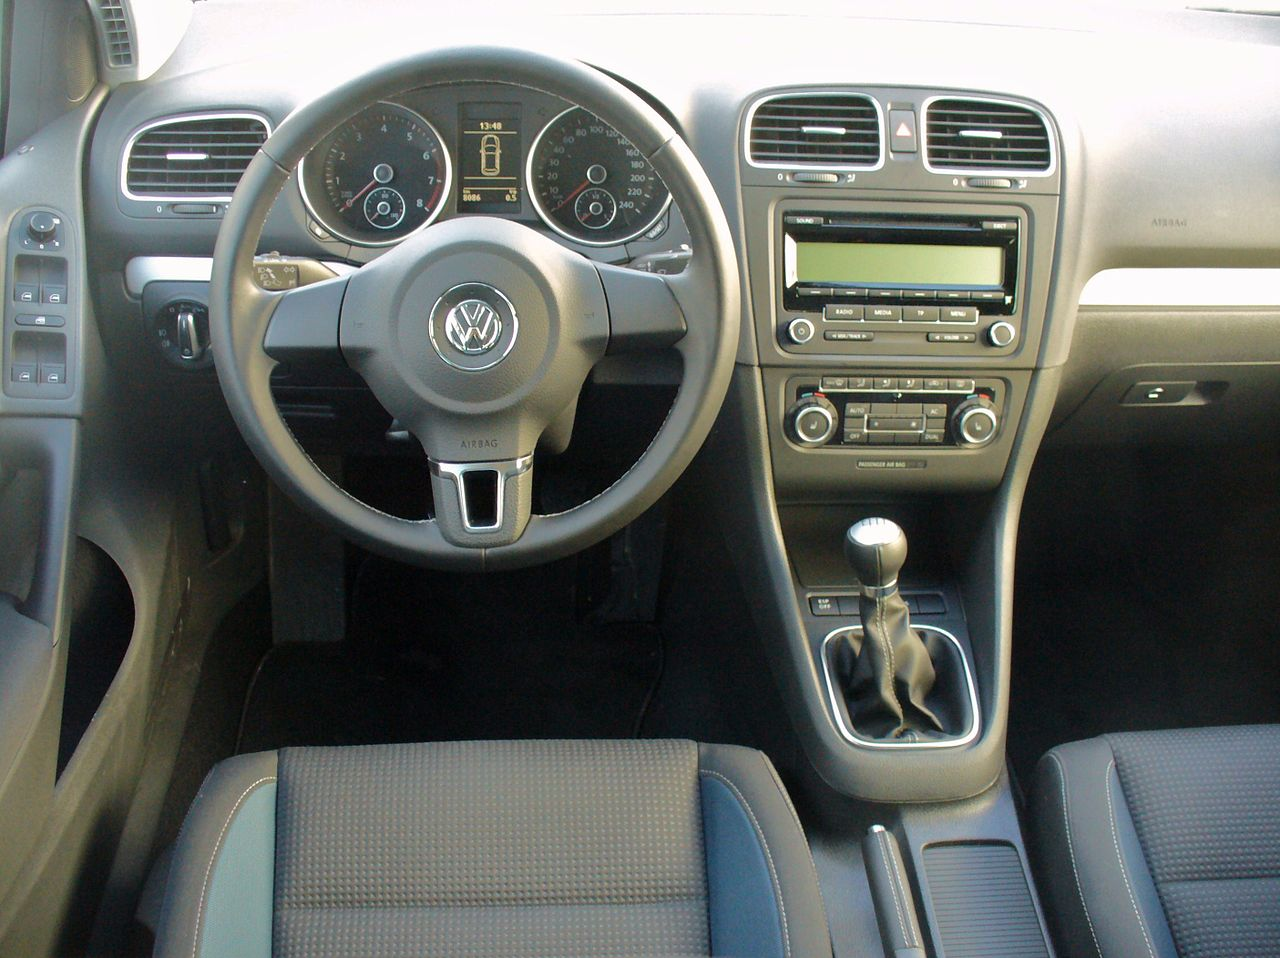 file vw golf vi 1 2 tsi team monosilber interieur jpg wikimedia commons. Black Bedroom Furniture Sets. Home Design Ideas